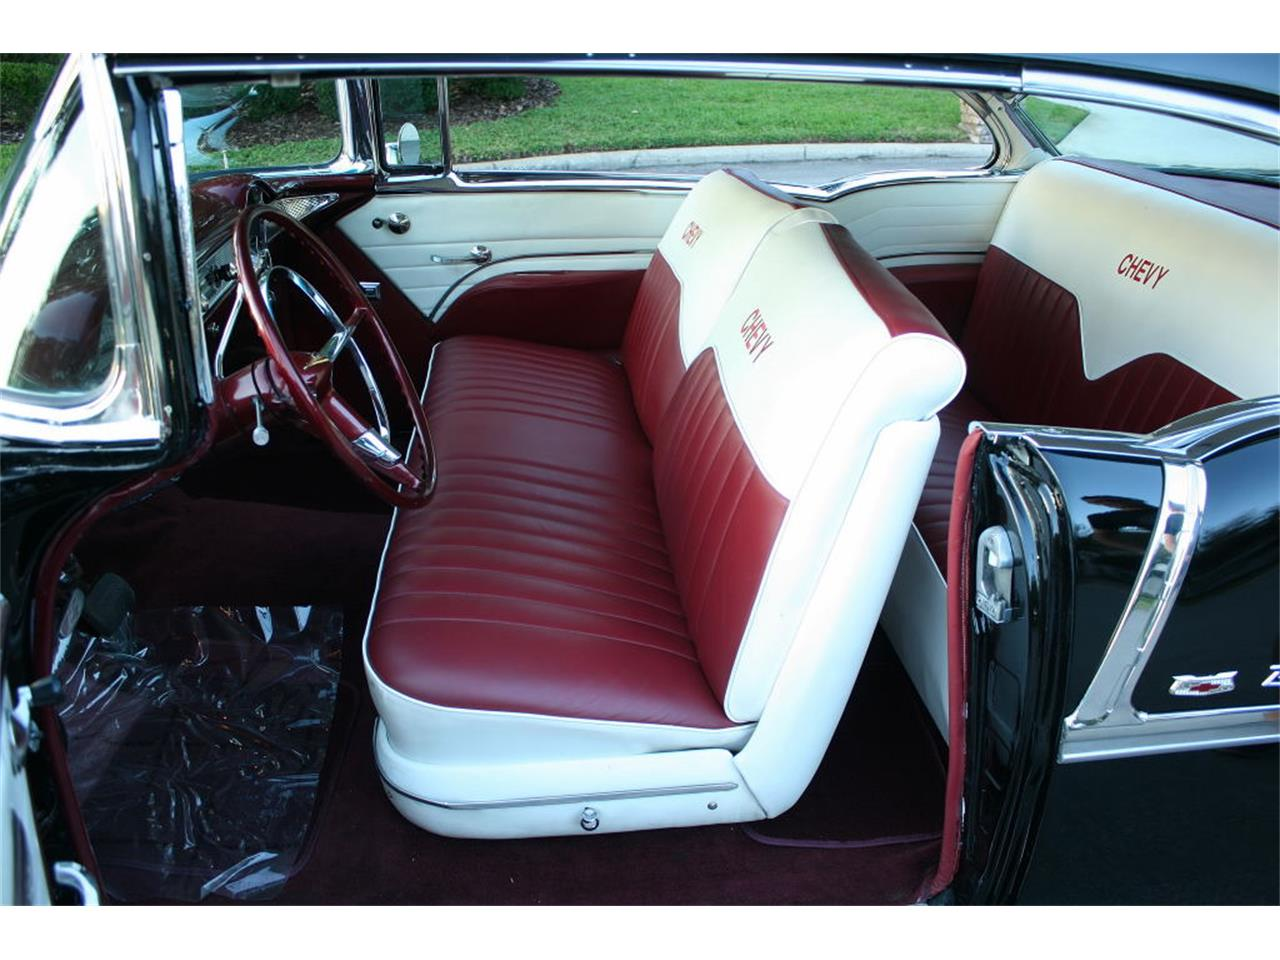 Large Picture of 1955 Chevrolet Bel Air located in Lakeland Florida - $59,500.00 Offered by MJC Classic Cars - MCLQ